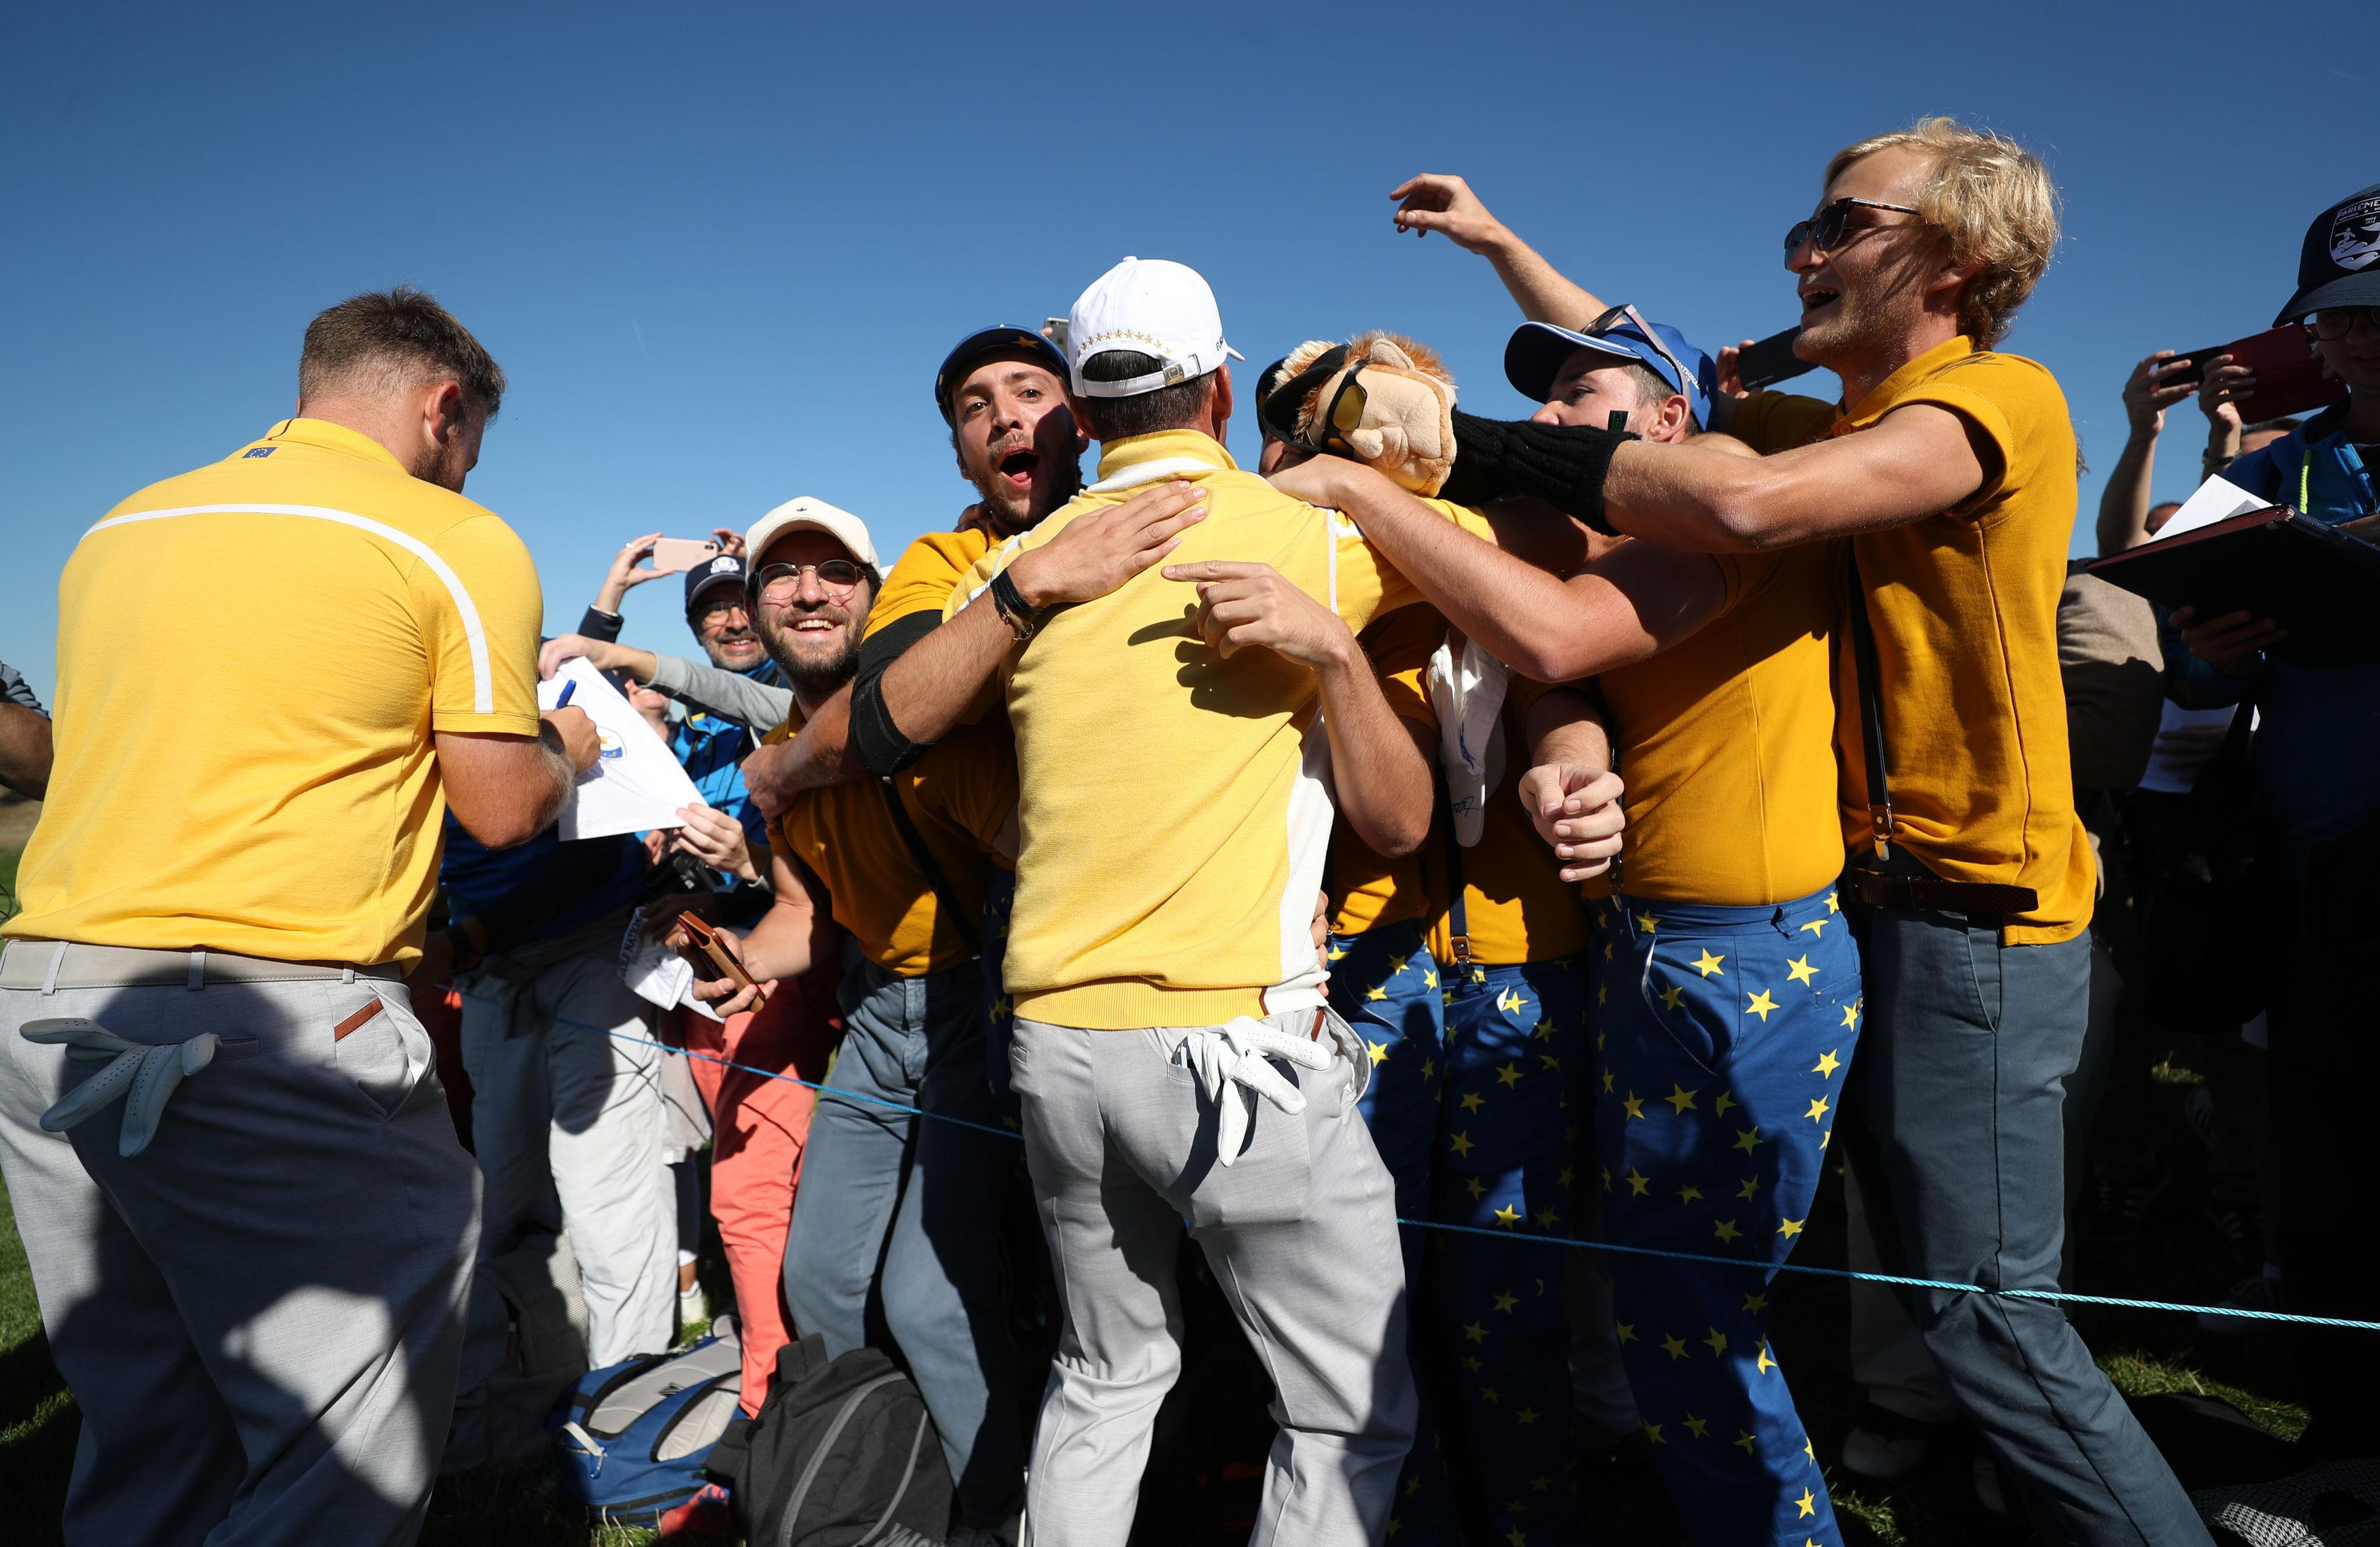 Paul Casey - making his fourth appearance at a World Cup - rejoices with the crowd